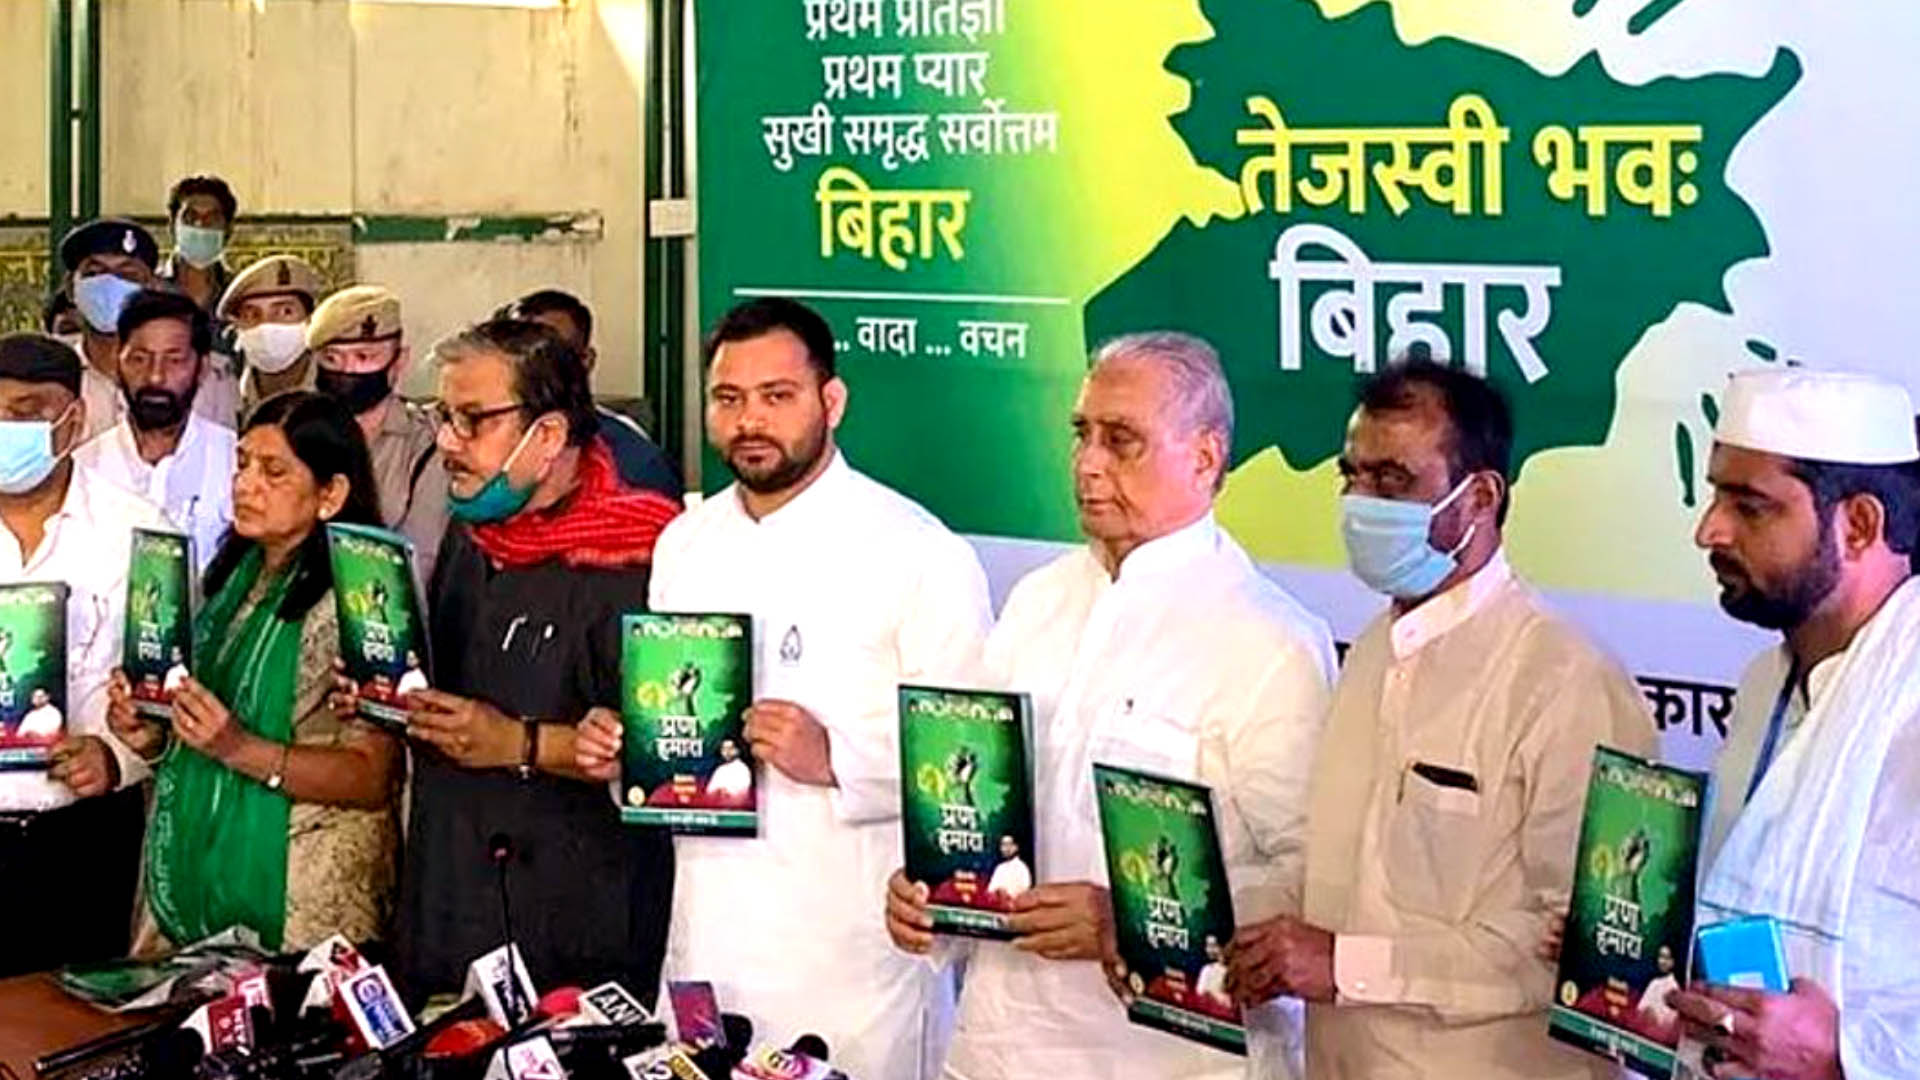 RJD Promises 10 lakh Jobs in its Election Manifesto